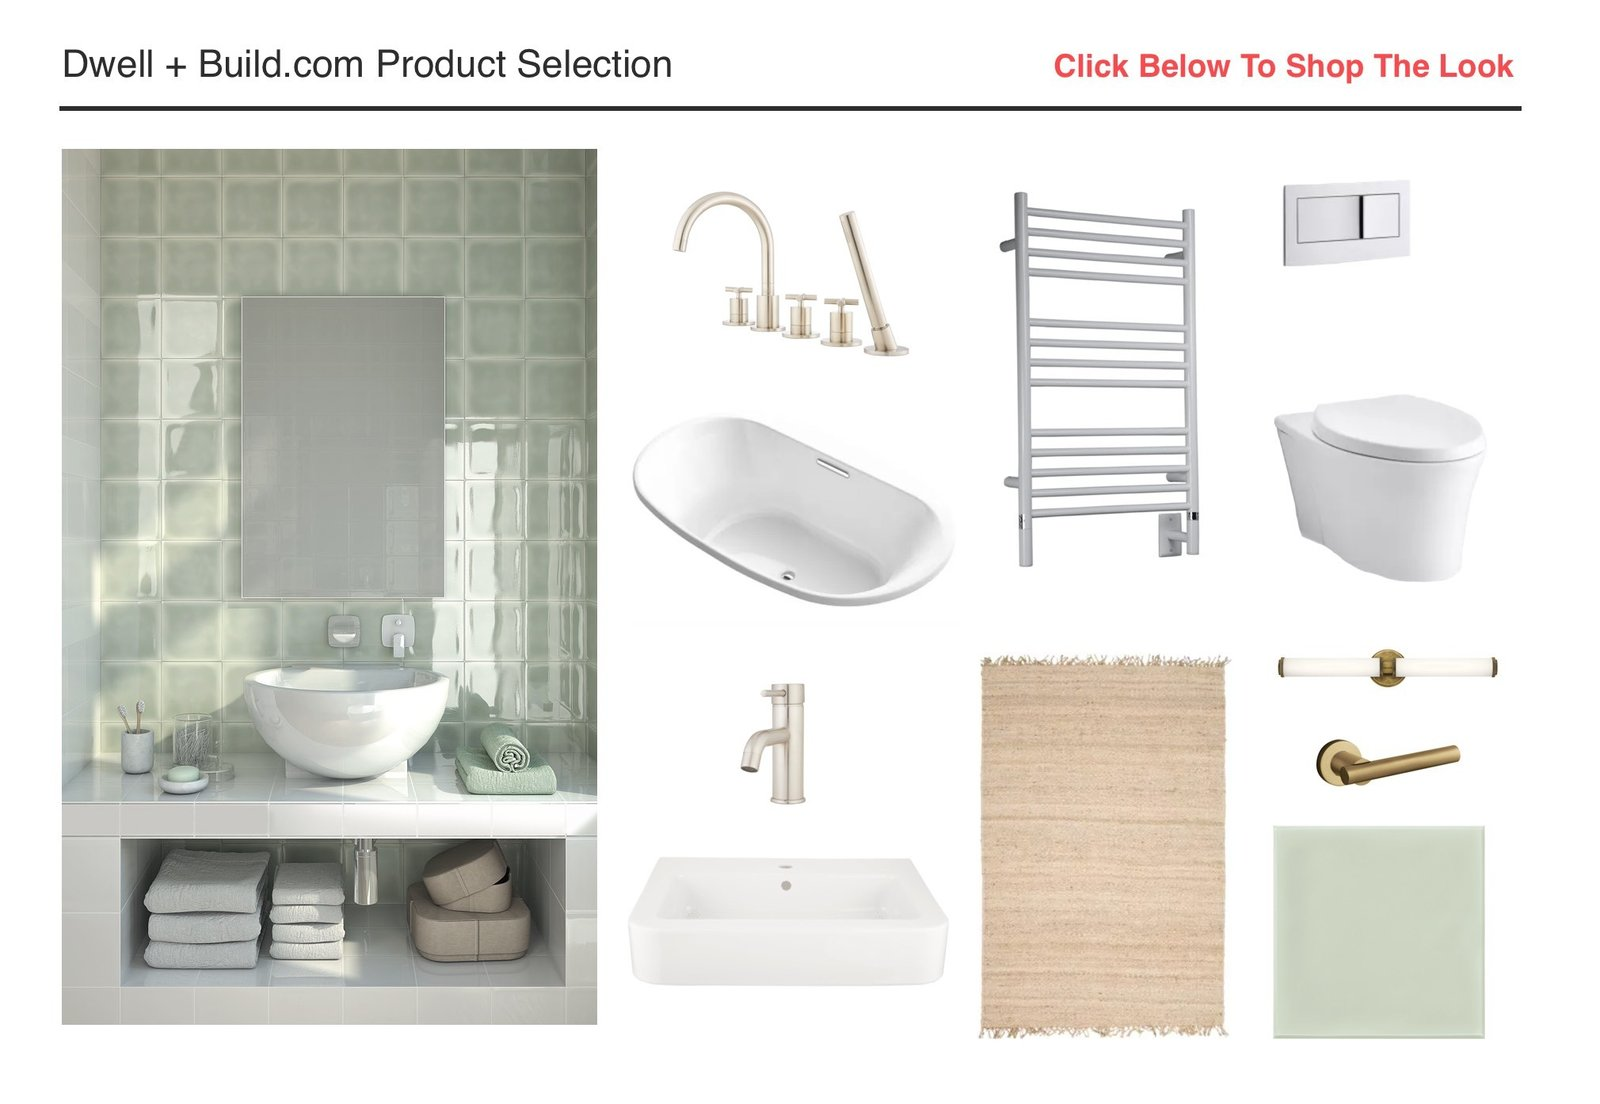 Photo 6 of 8 in Chillhouse Founder Cyndi Ramirez Reveals How to Create Cool, Collected Bathroom Vibes